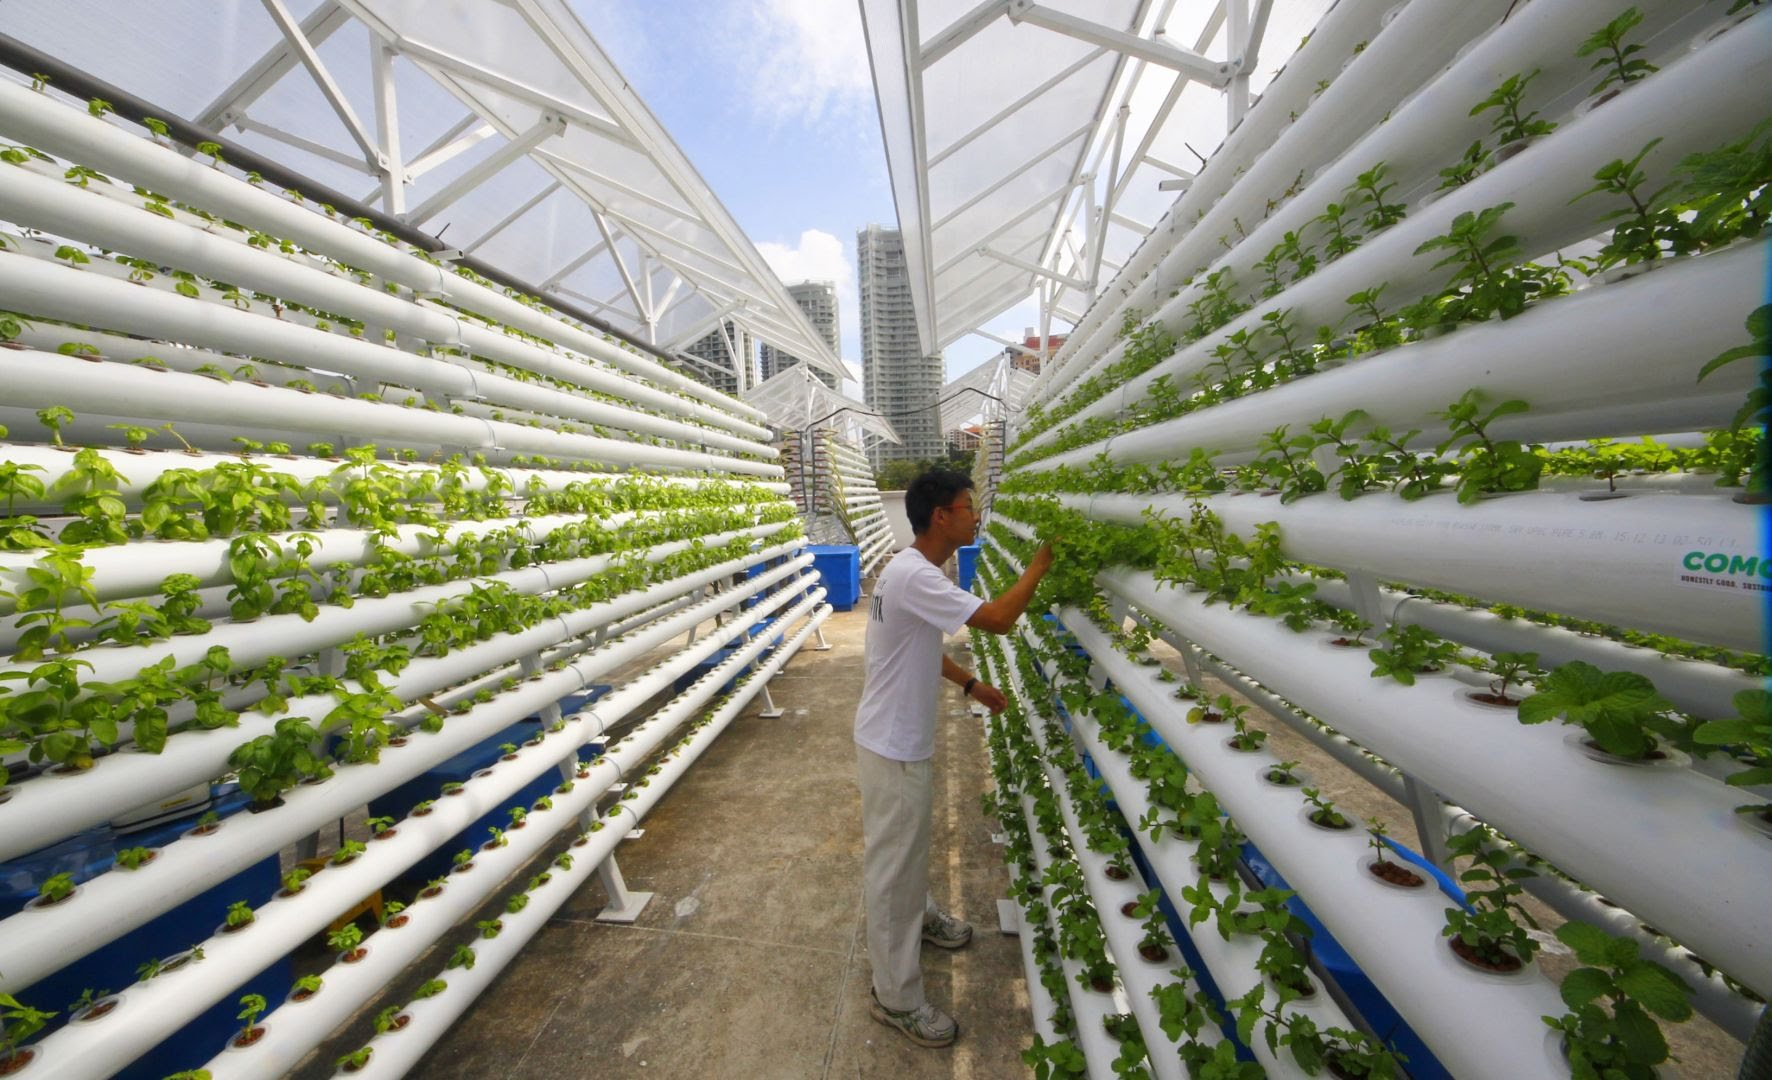 Vertical Farming The Latest Trend For Producing Food